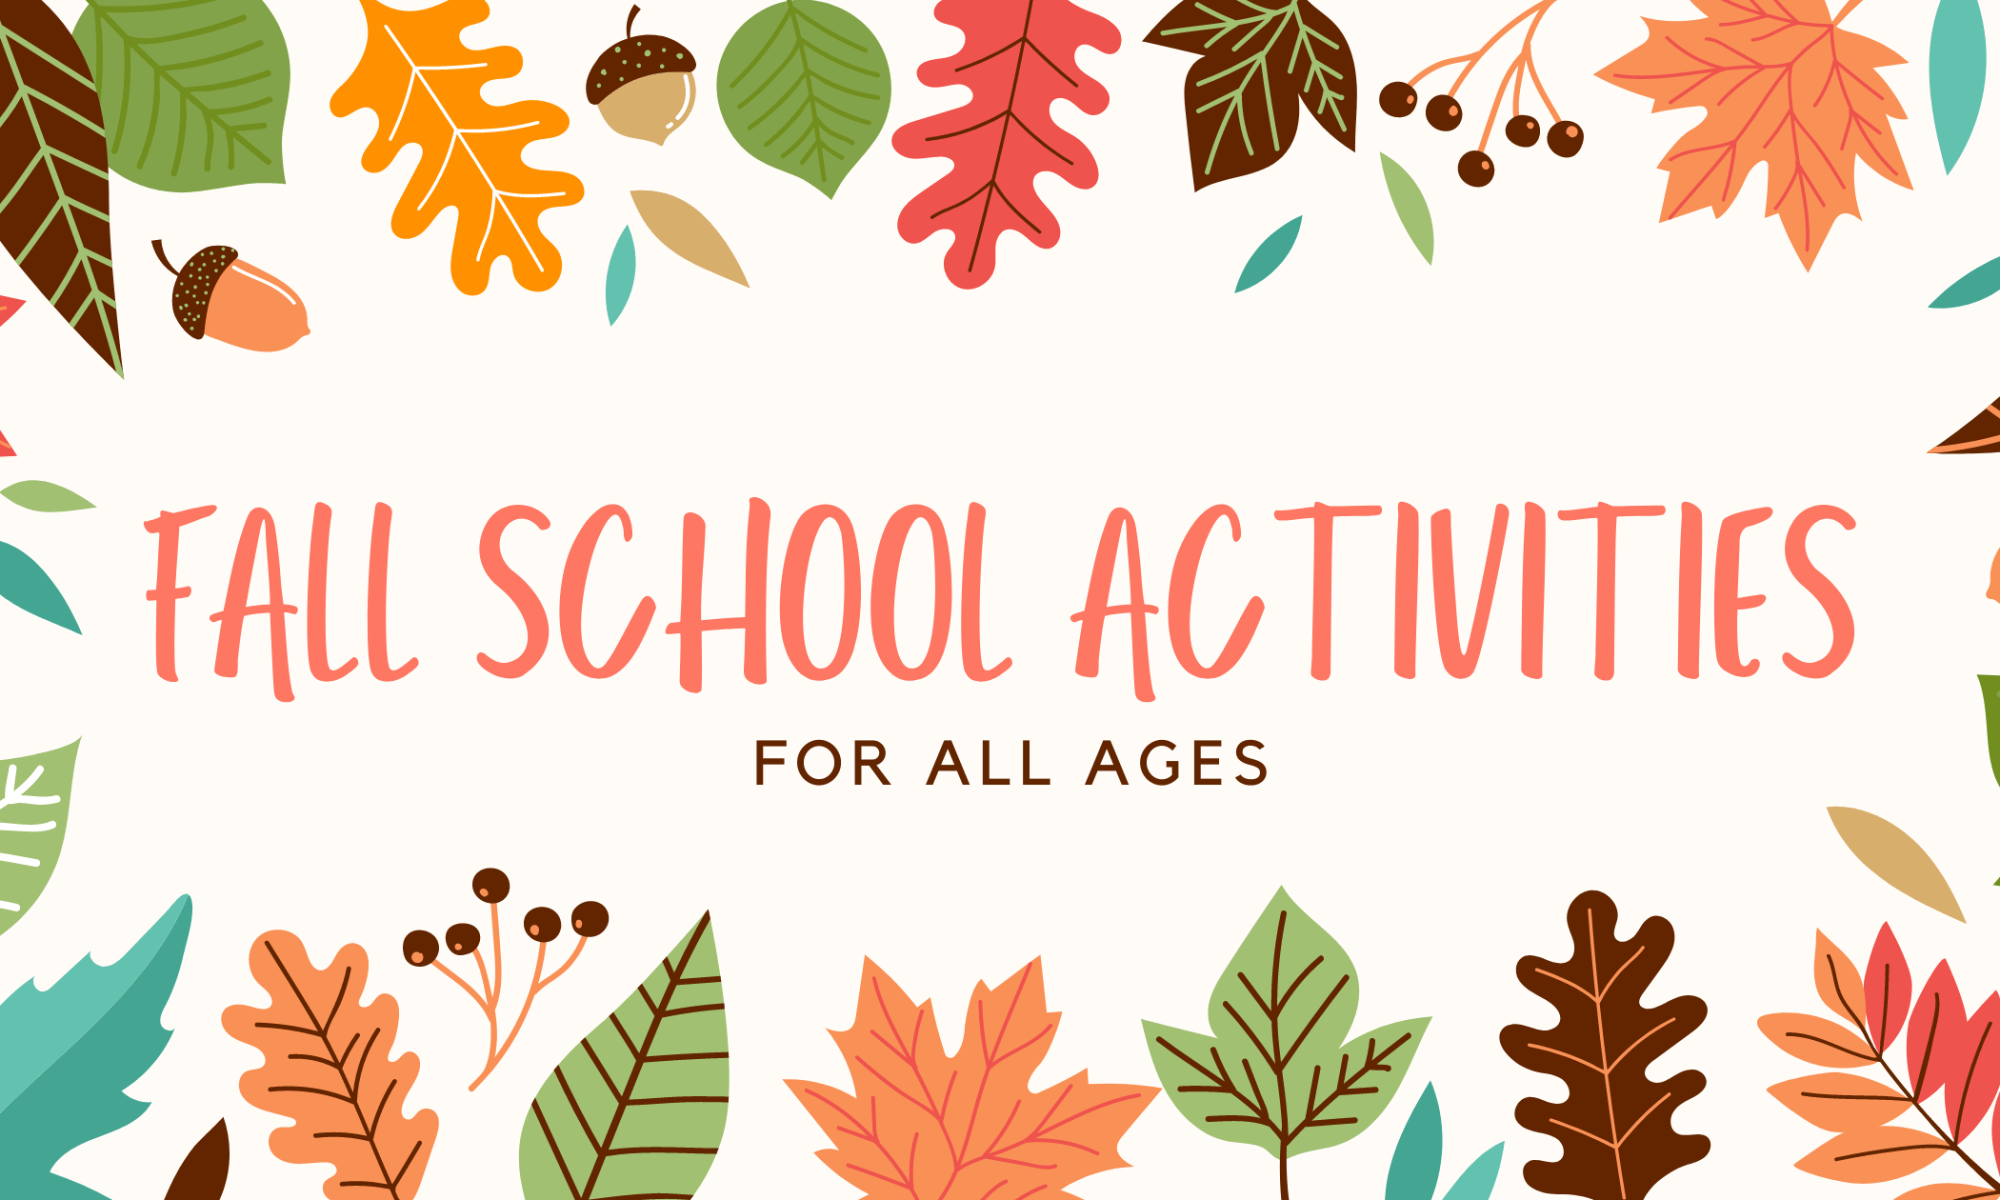 fall school activities for all ages